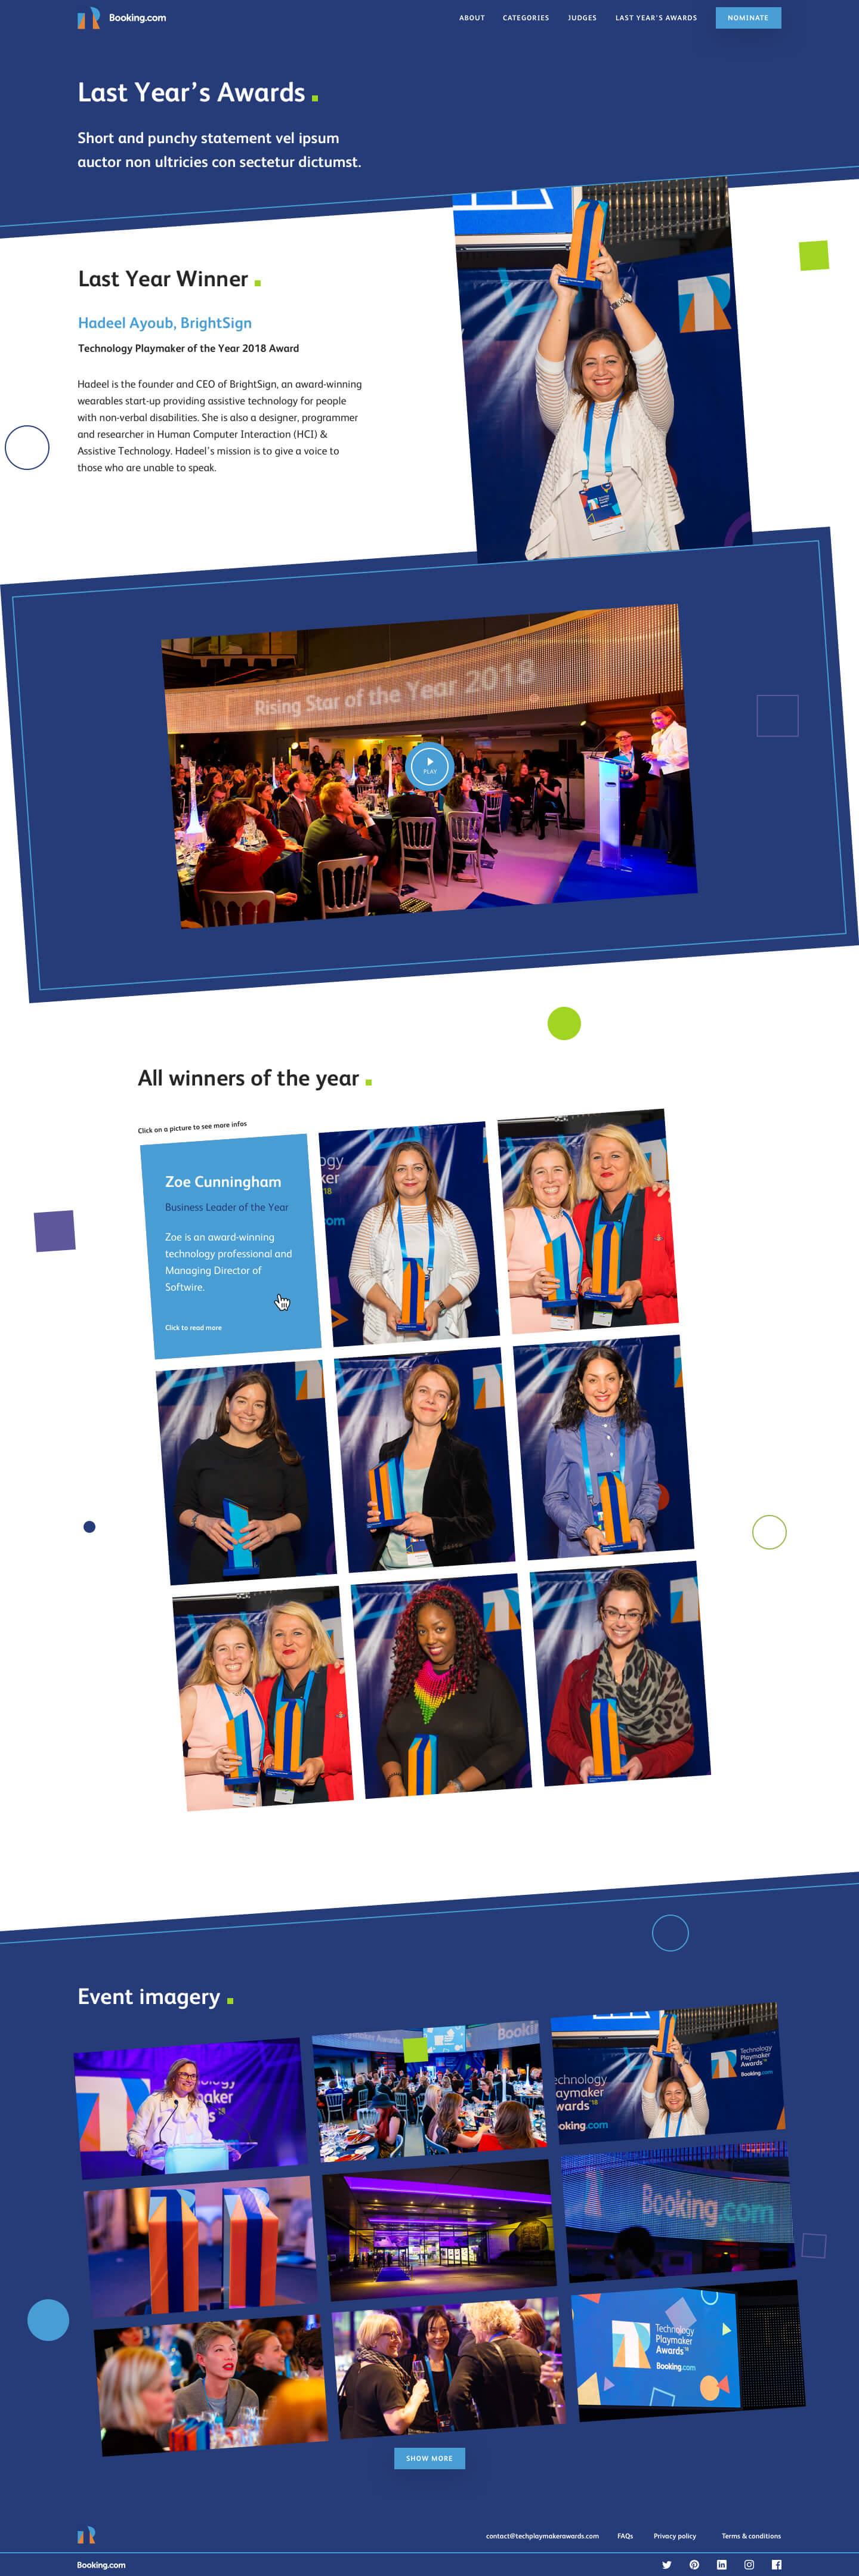 Last year page of the Technology Playmaker Awards 2019 website